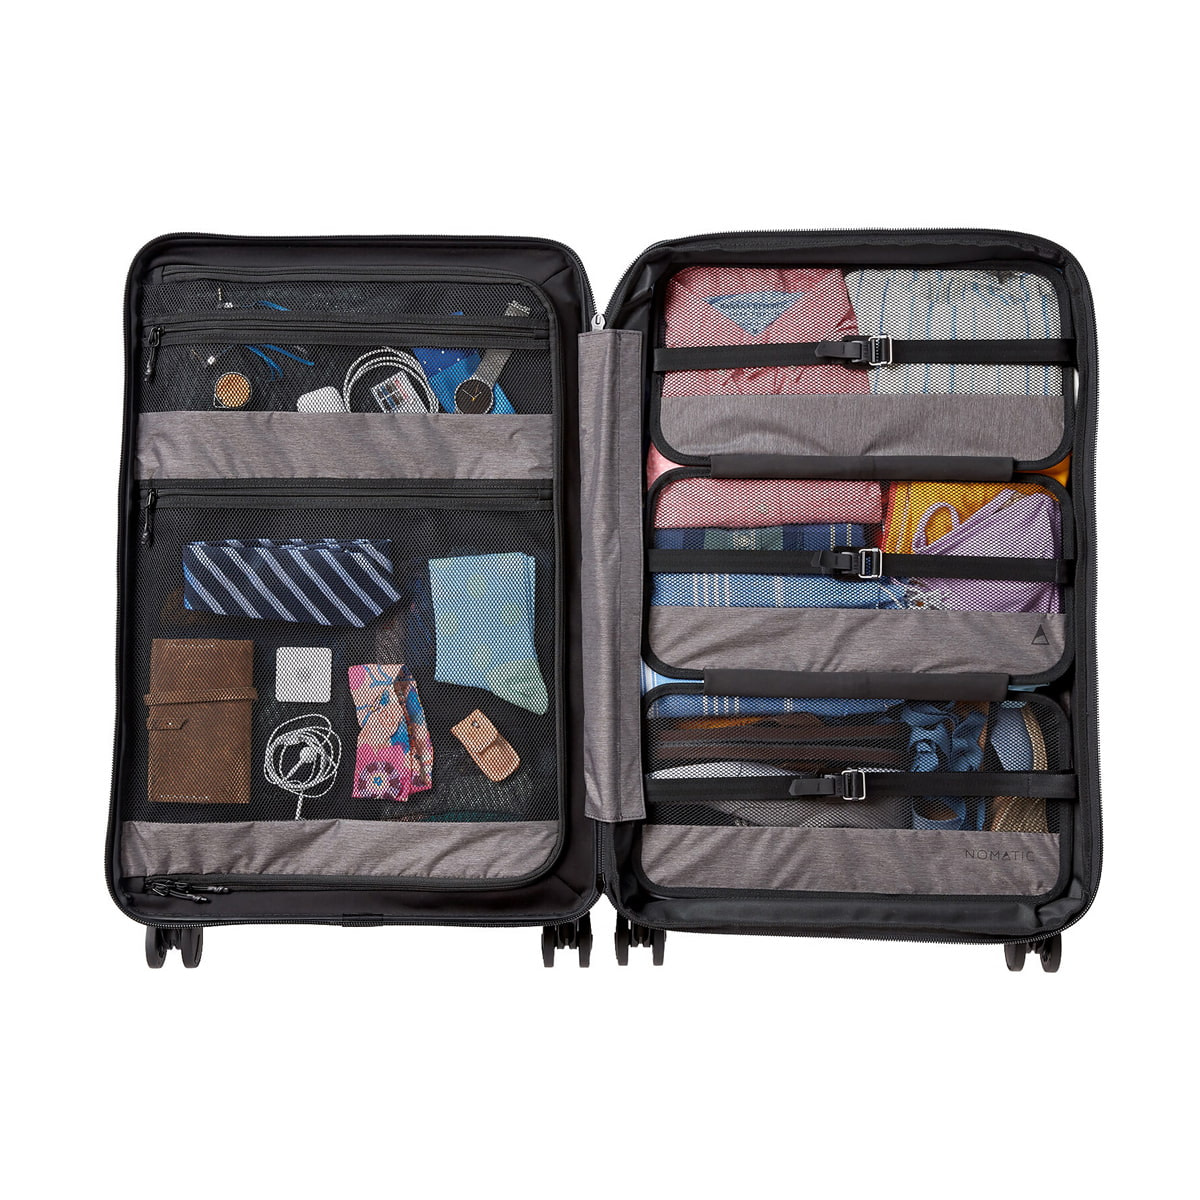 Best checked luggage for men